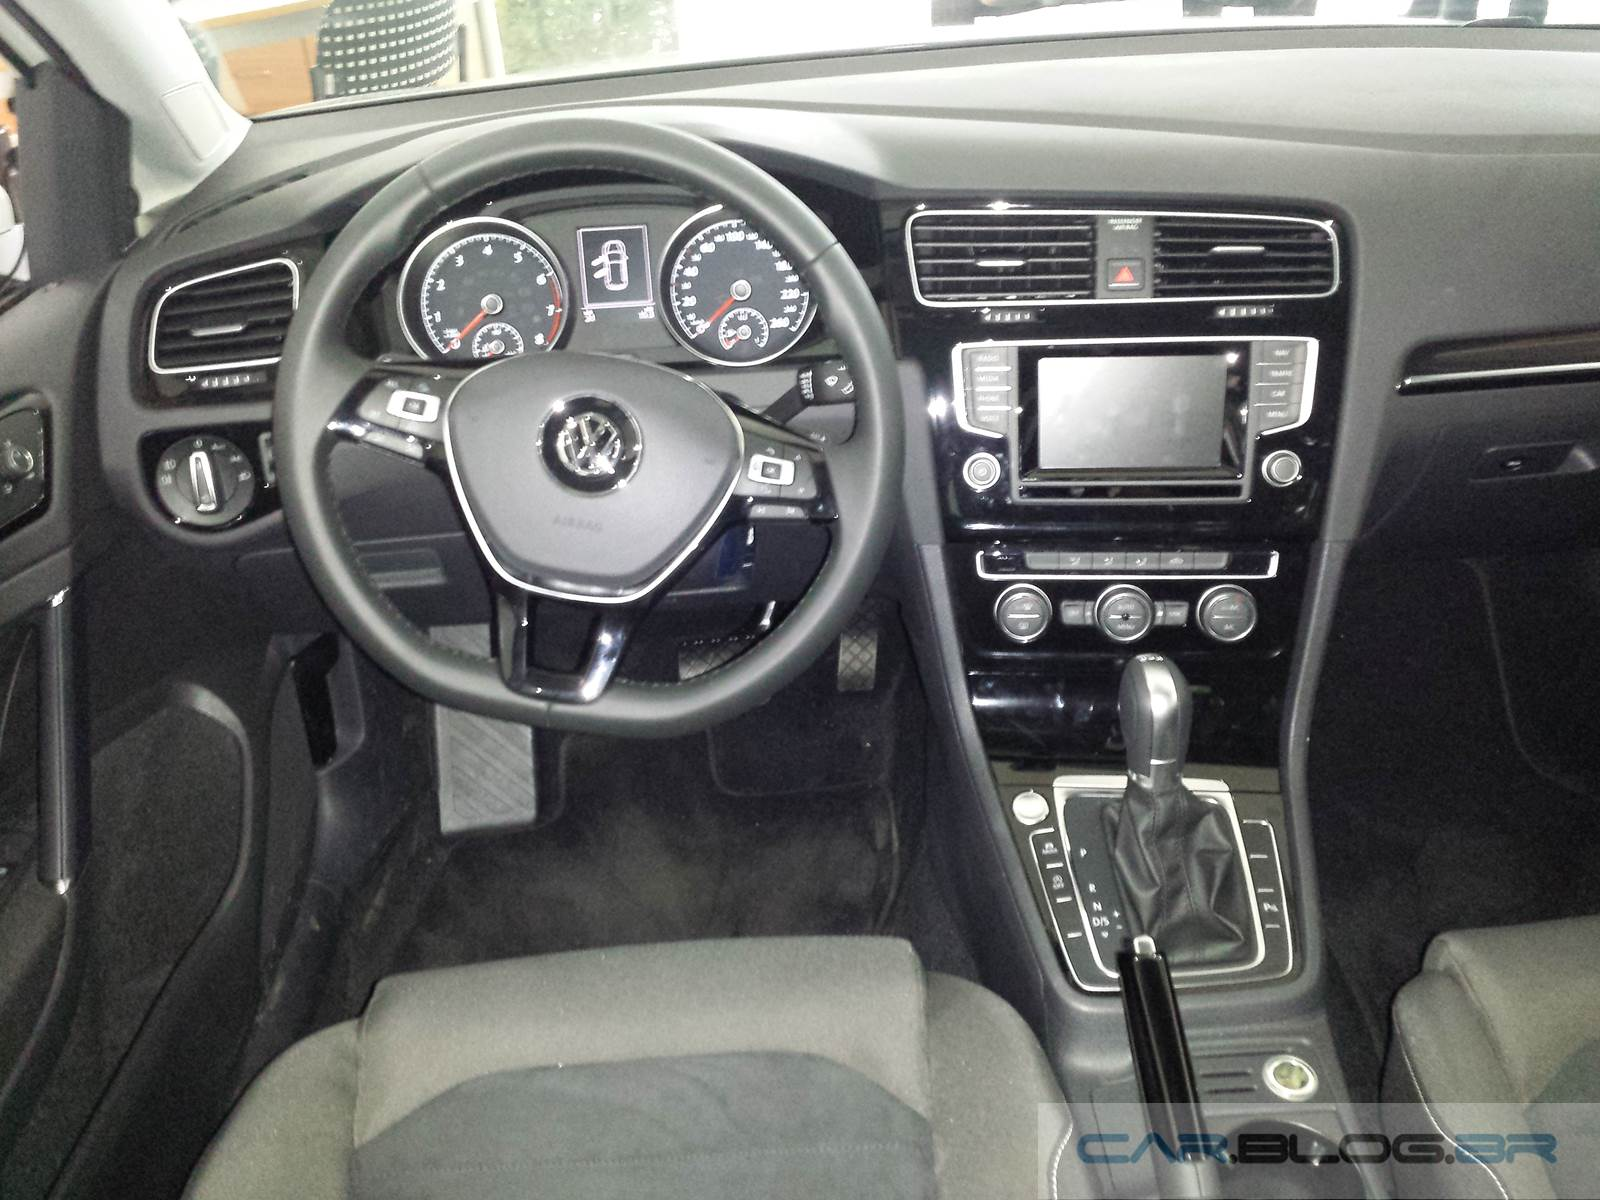 VW Golf Highline 2015 - interior